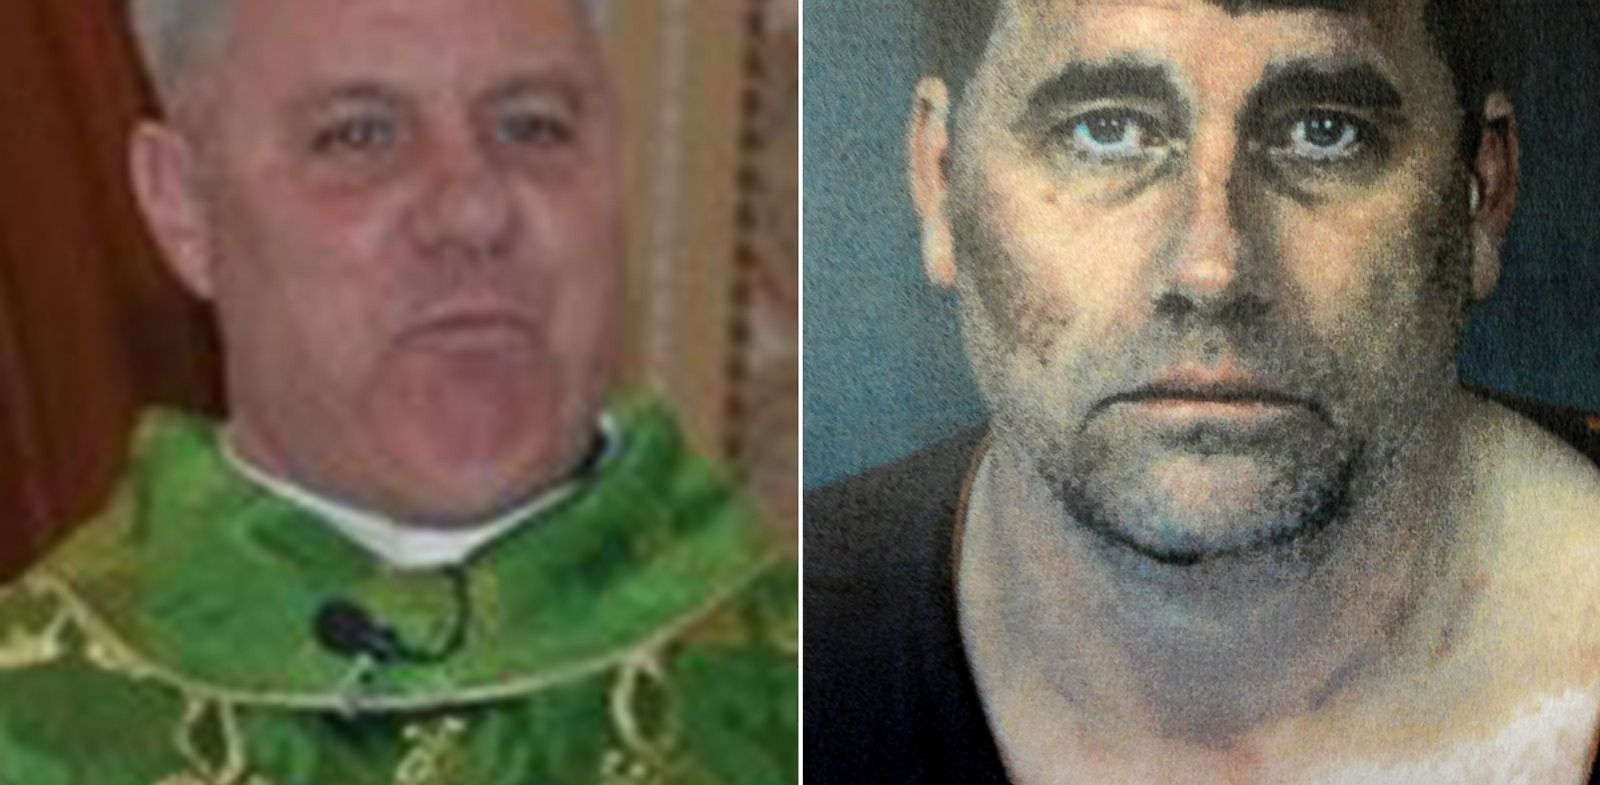 PHOTO: Eureka, Calif., police have issued an arrest warrant for Gary Lee Bullock, right, for the murder of a popular Catholic priest, Eric Freed.